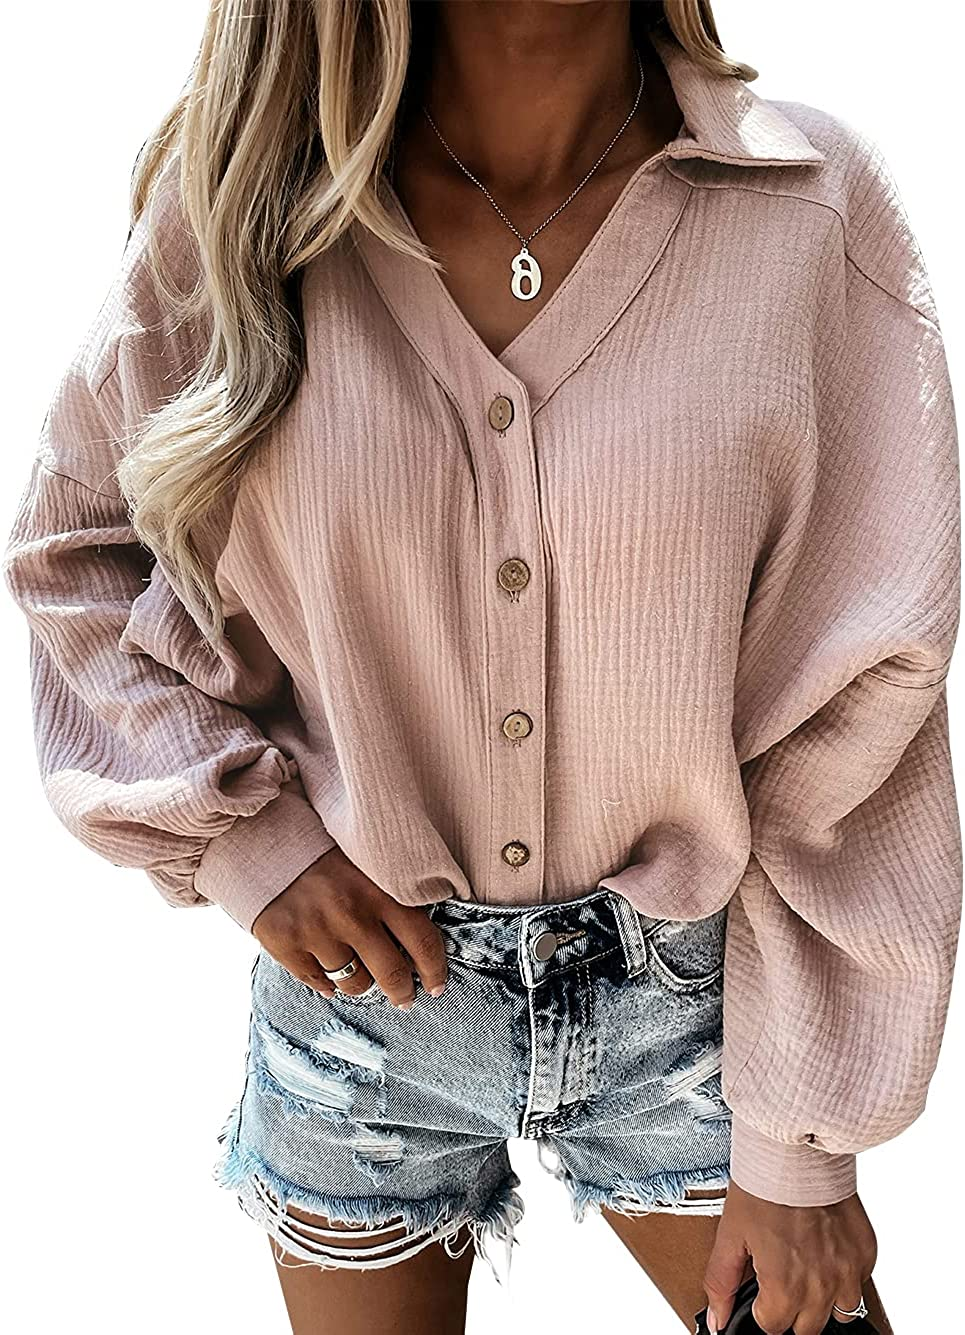 TEMOFON Womens Long Sleeve Tunic Blouse Button Down Shirt Solid Color Casual V Neck Loose Fit Tops